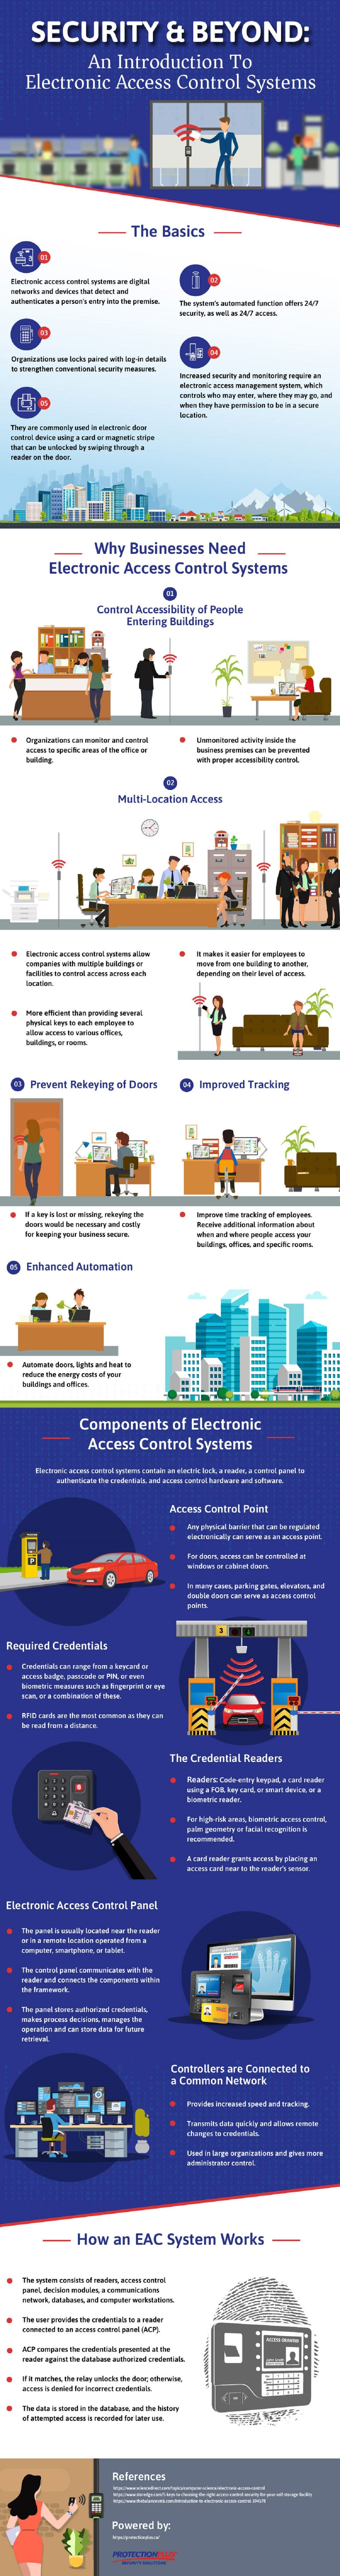 electronic-access-control-system-infographic